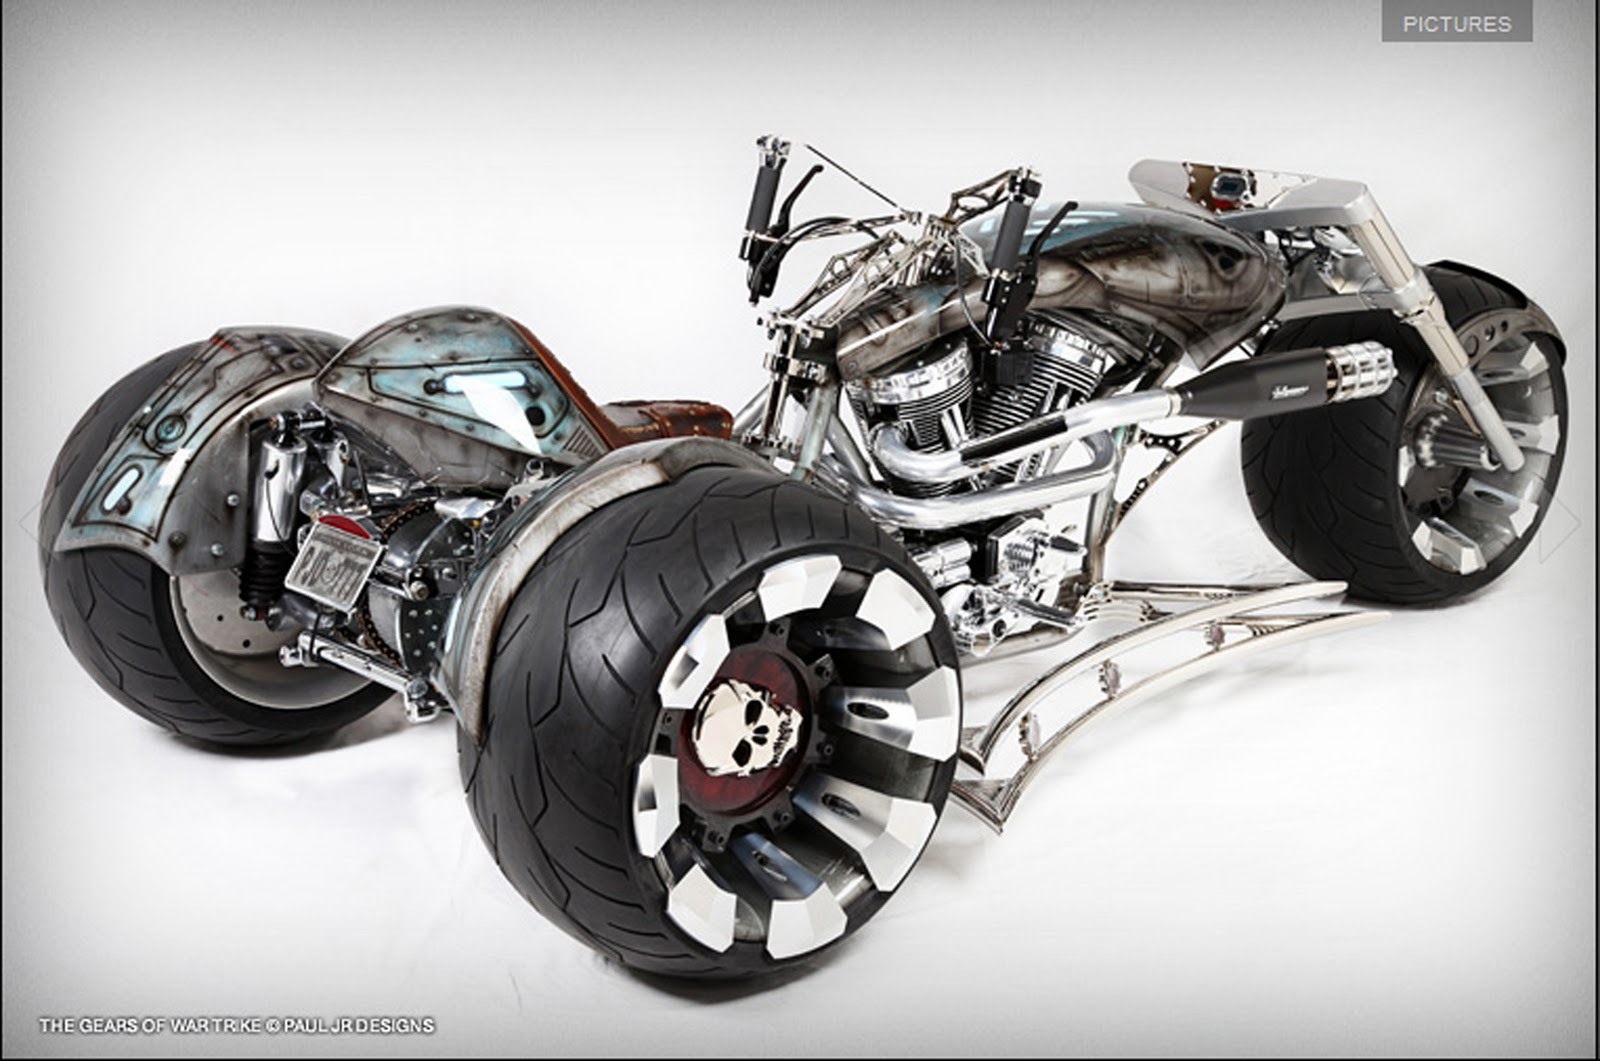 Paul Jr. Designs Motorcycles